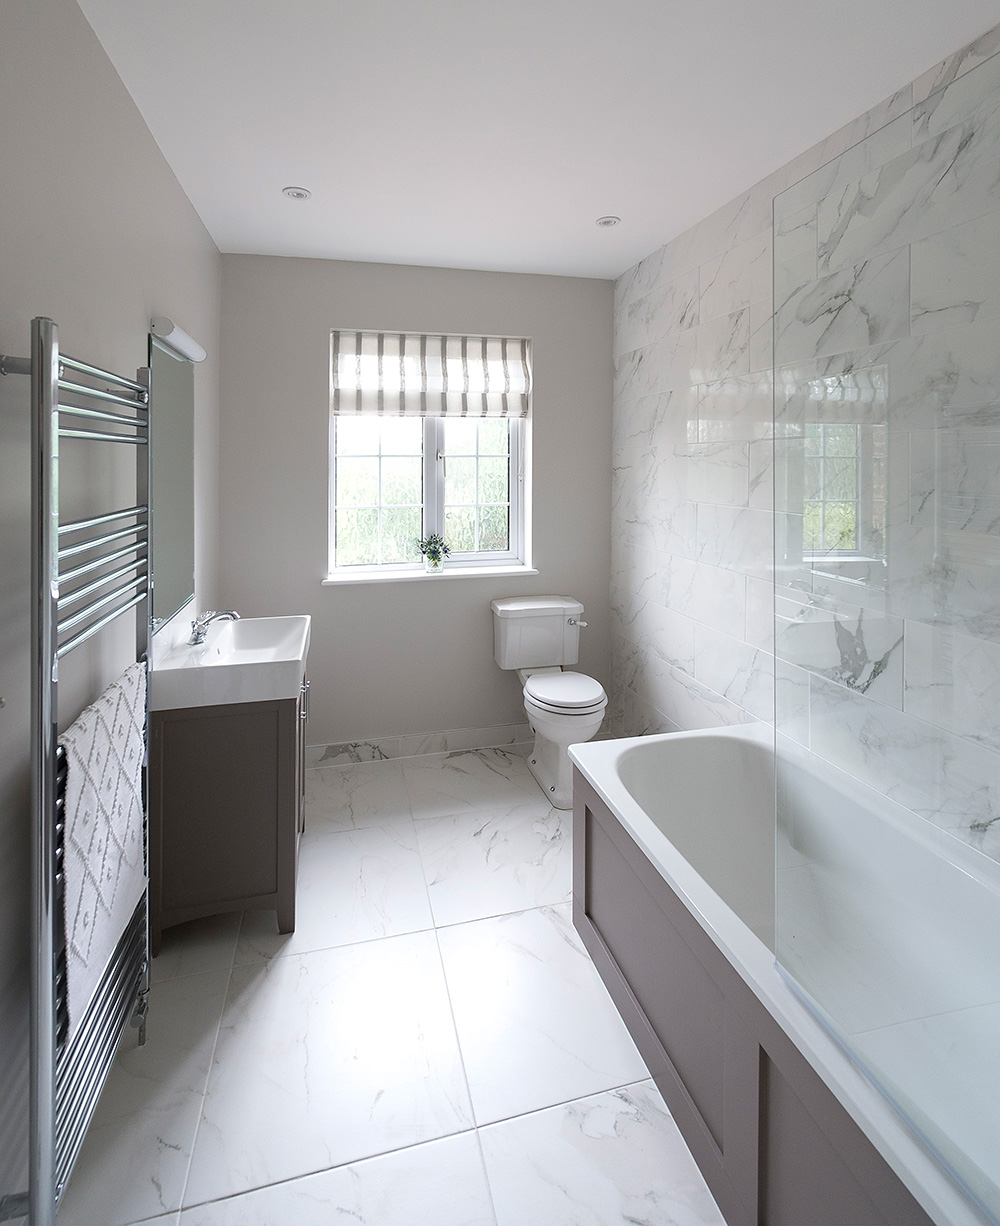 1-nikki-rees-bathroom-design-carra-marbel-renovation-interior-design-wimbledon-london-surrey